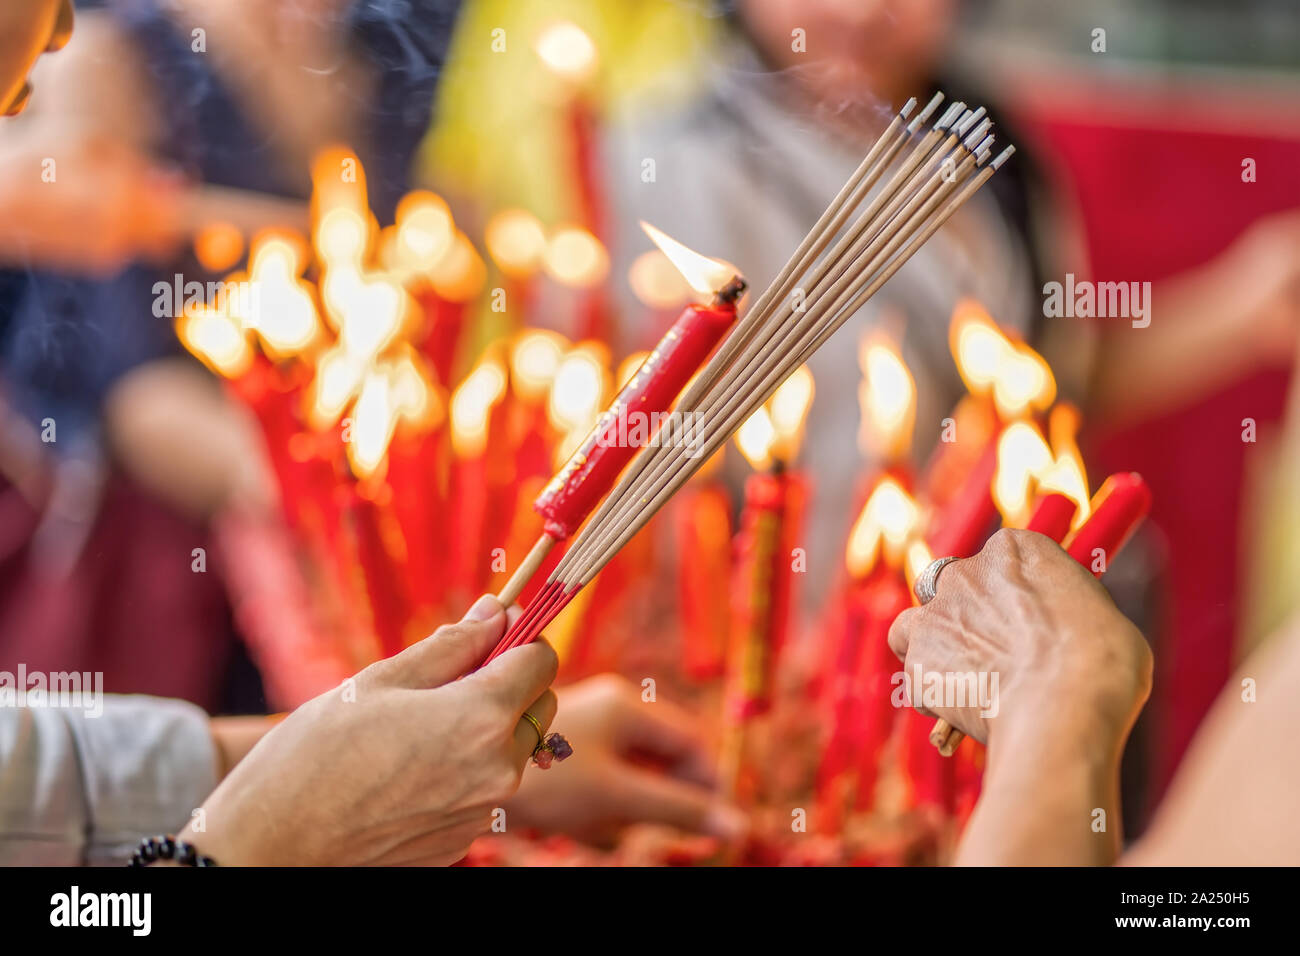 The Burning Incense And Candle Worship In Buddhism Stock Photo Alamy